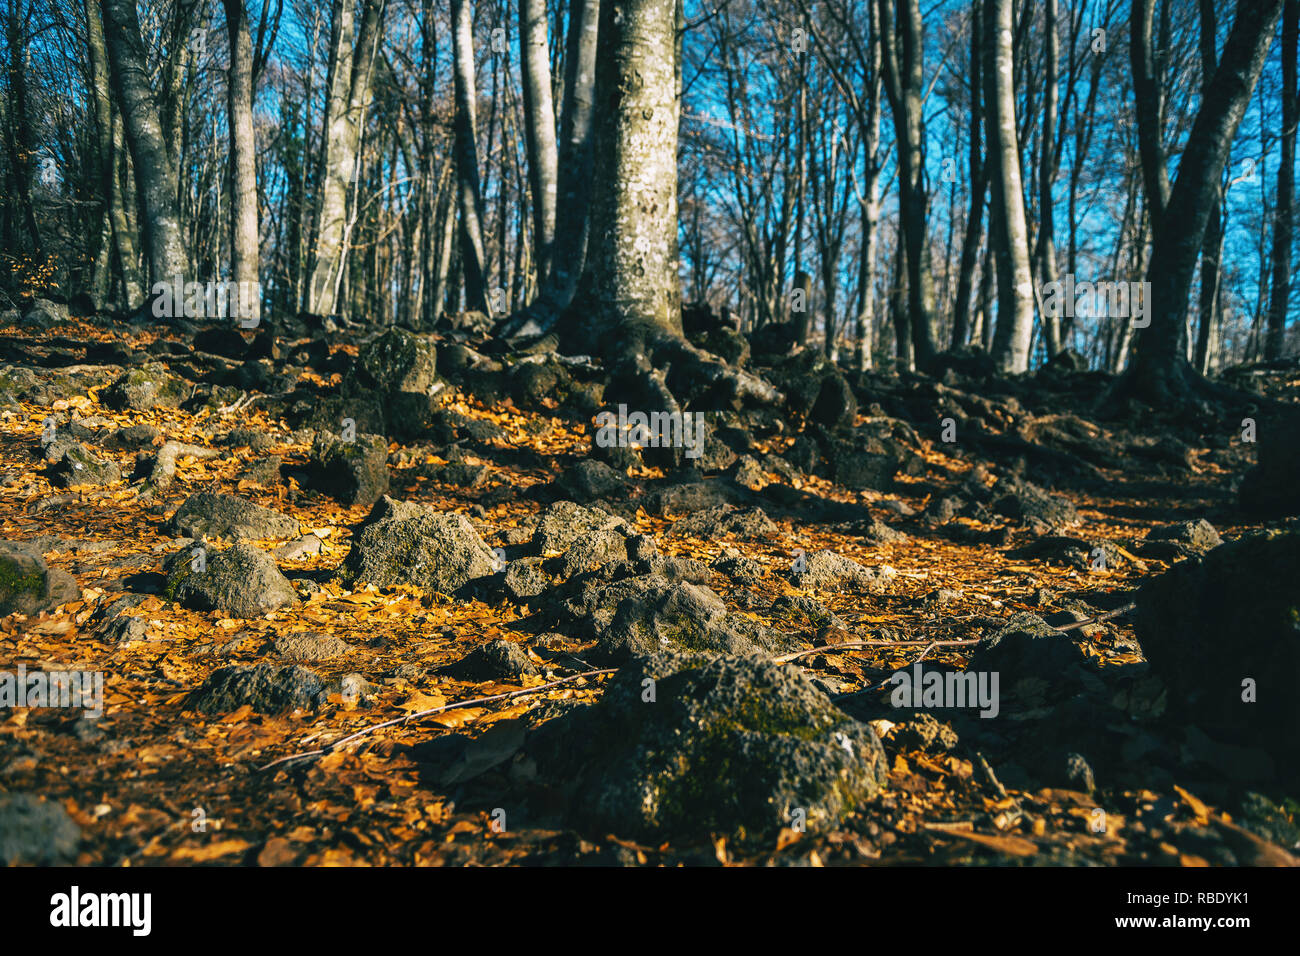 The ground of an autumnal forest full of leaves and rocks - Stock Image